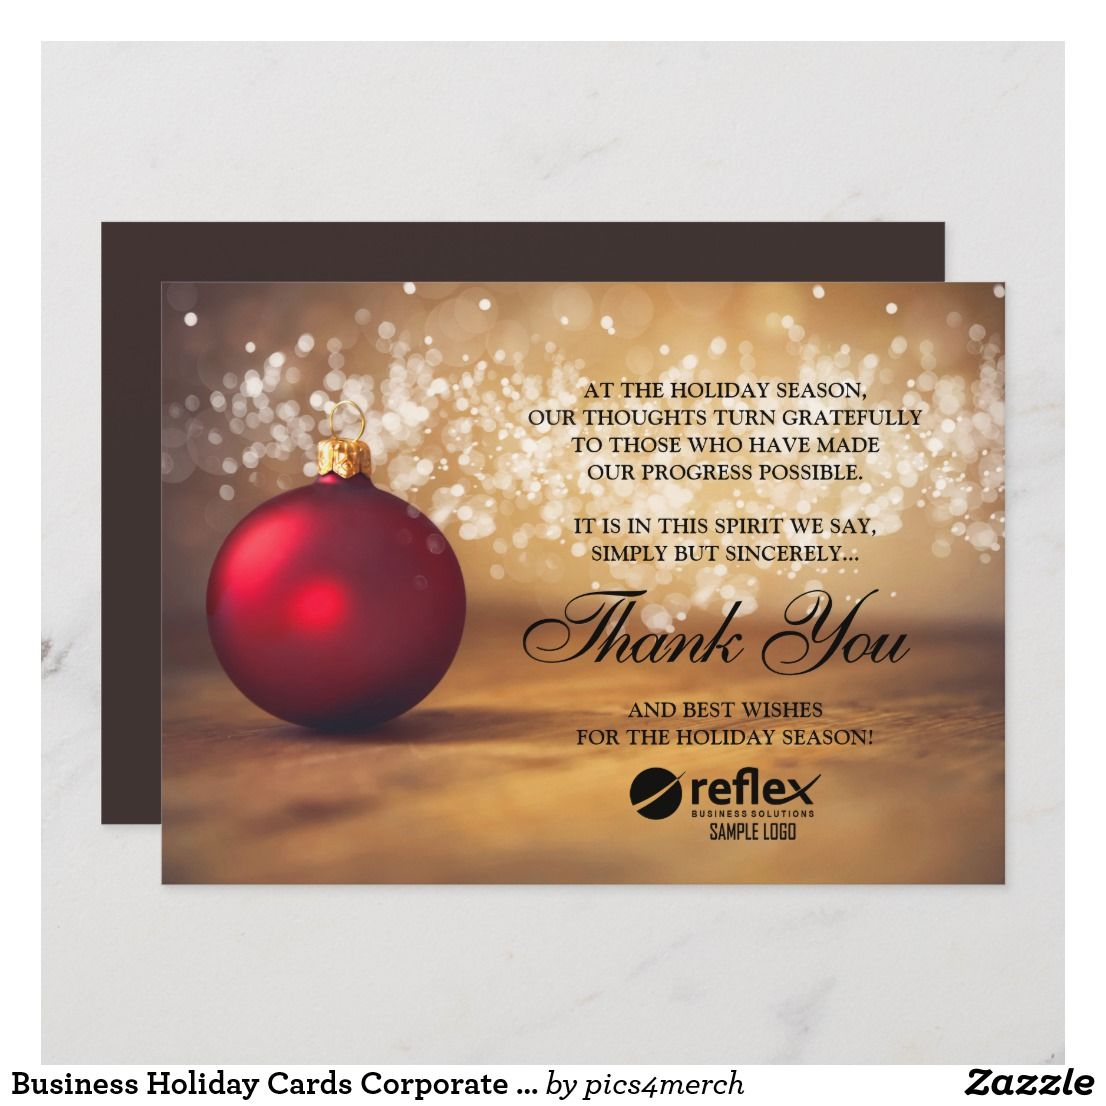 Business Holiday Cards Corporate Thank You Card Zazzle Com In